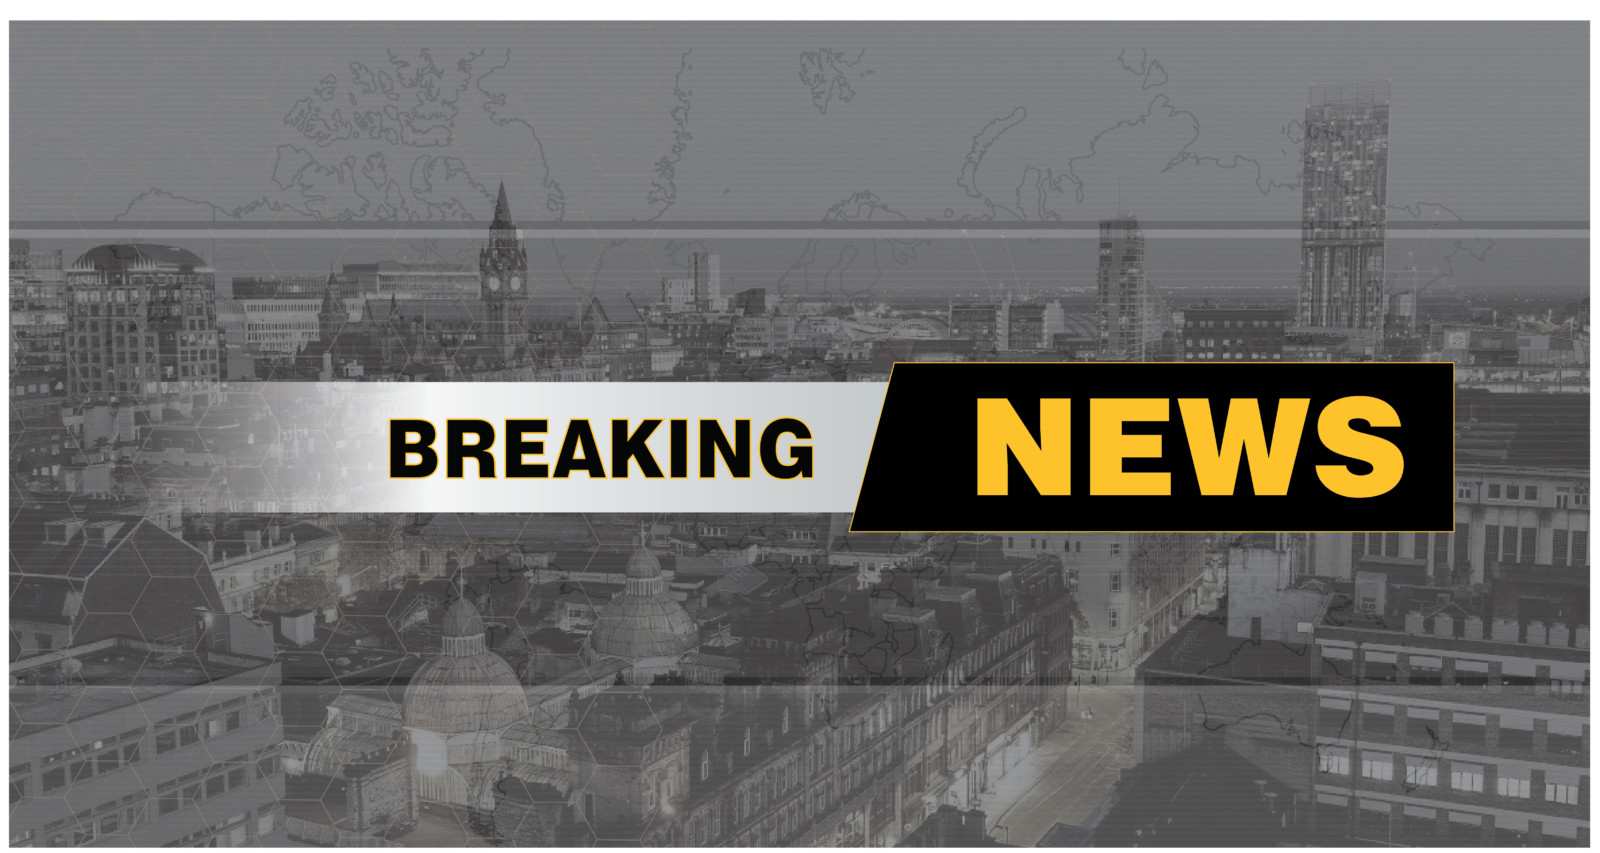 Manchester will enter Tier 3 after lockdown, The Manc